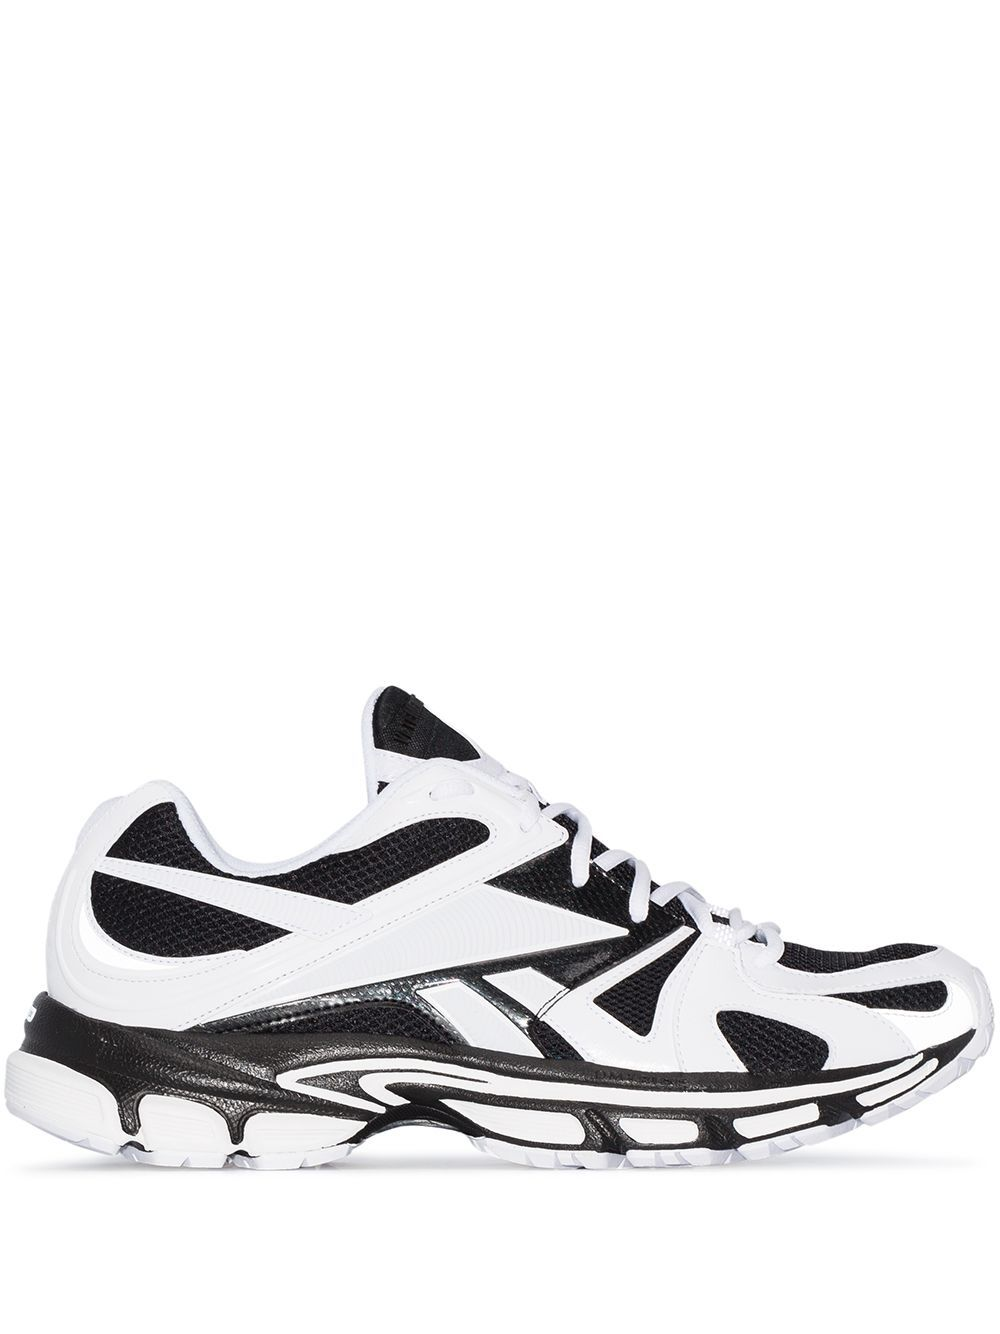 VETEMENTS Spike 200 sneakers white/black - Maison De Fashion